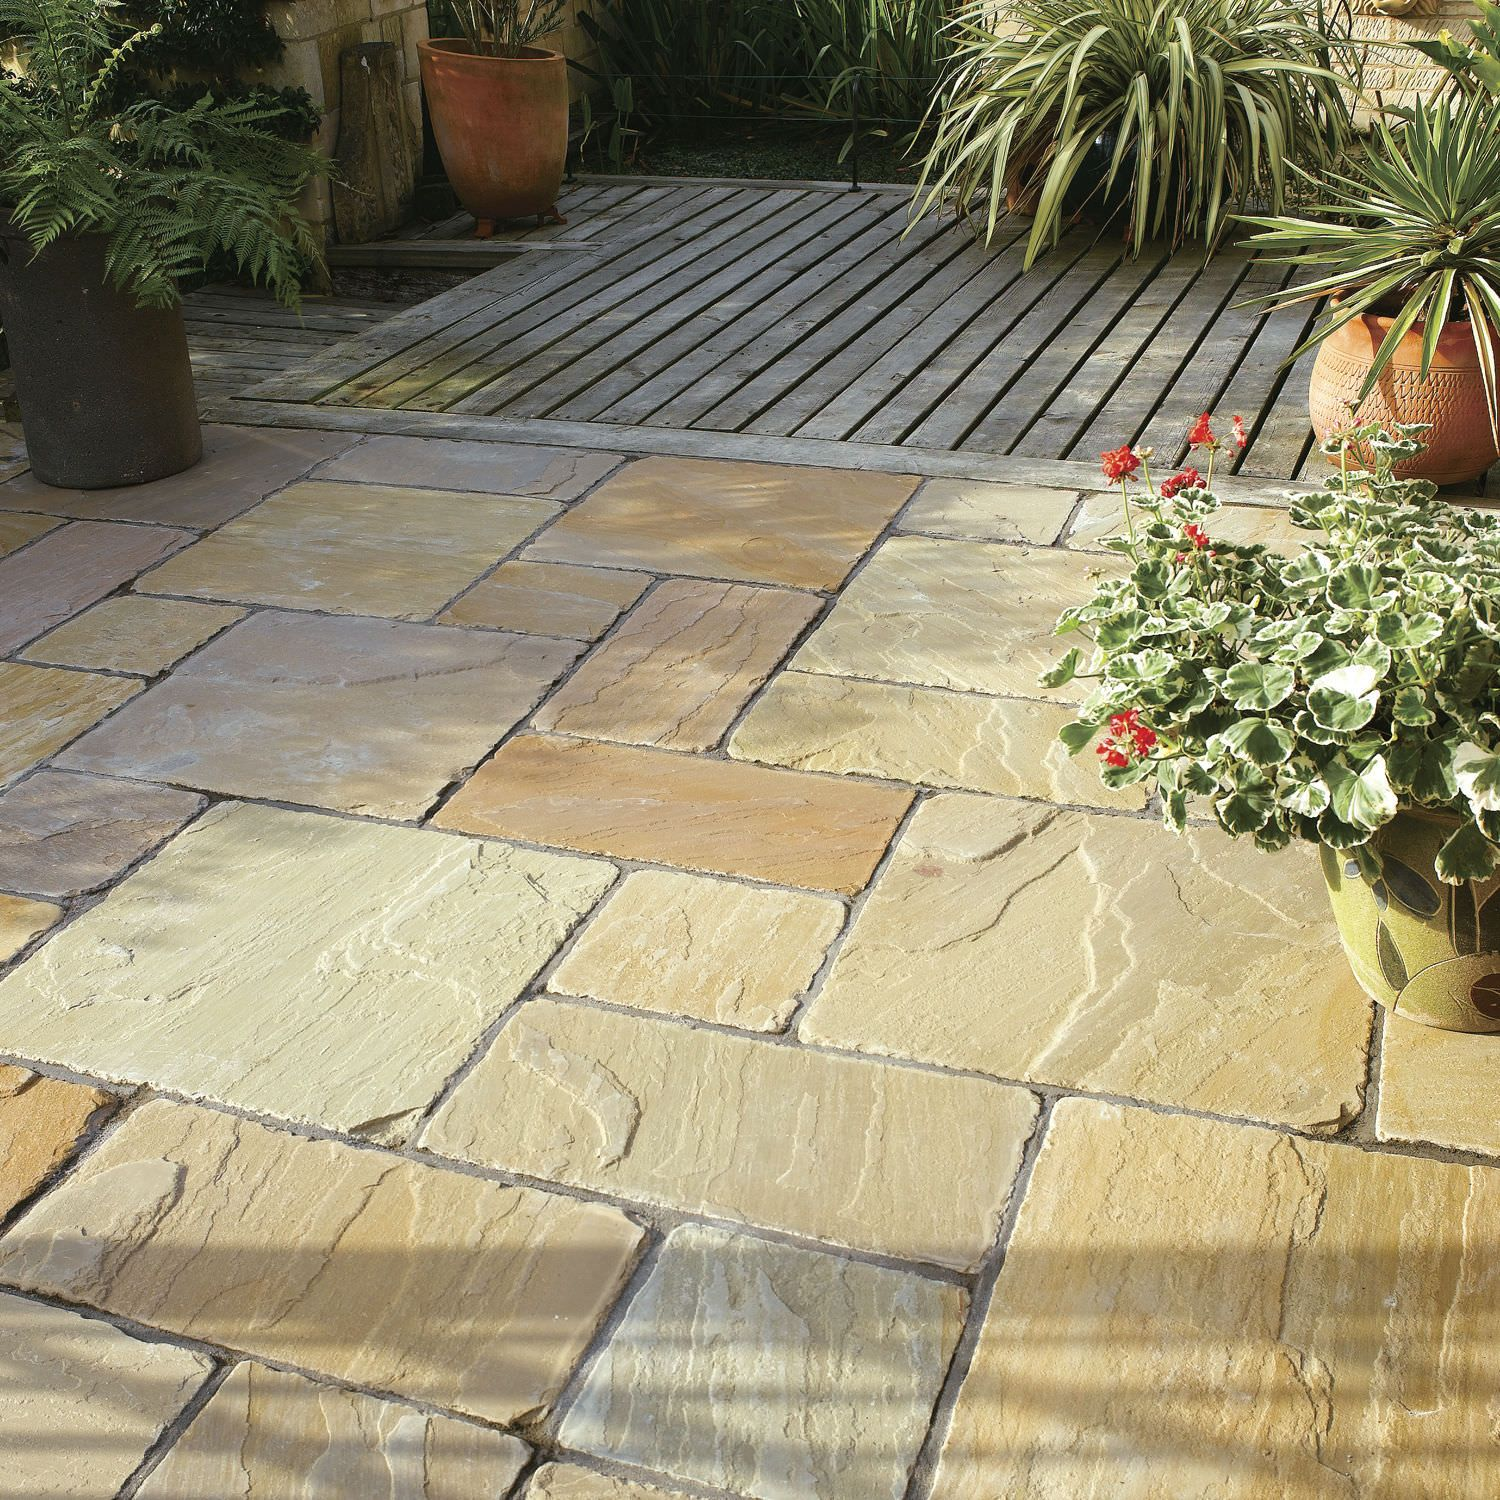 Outdoor tile garden for floors engineered stone ANTIQUE